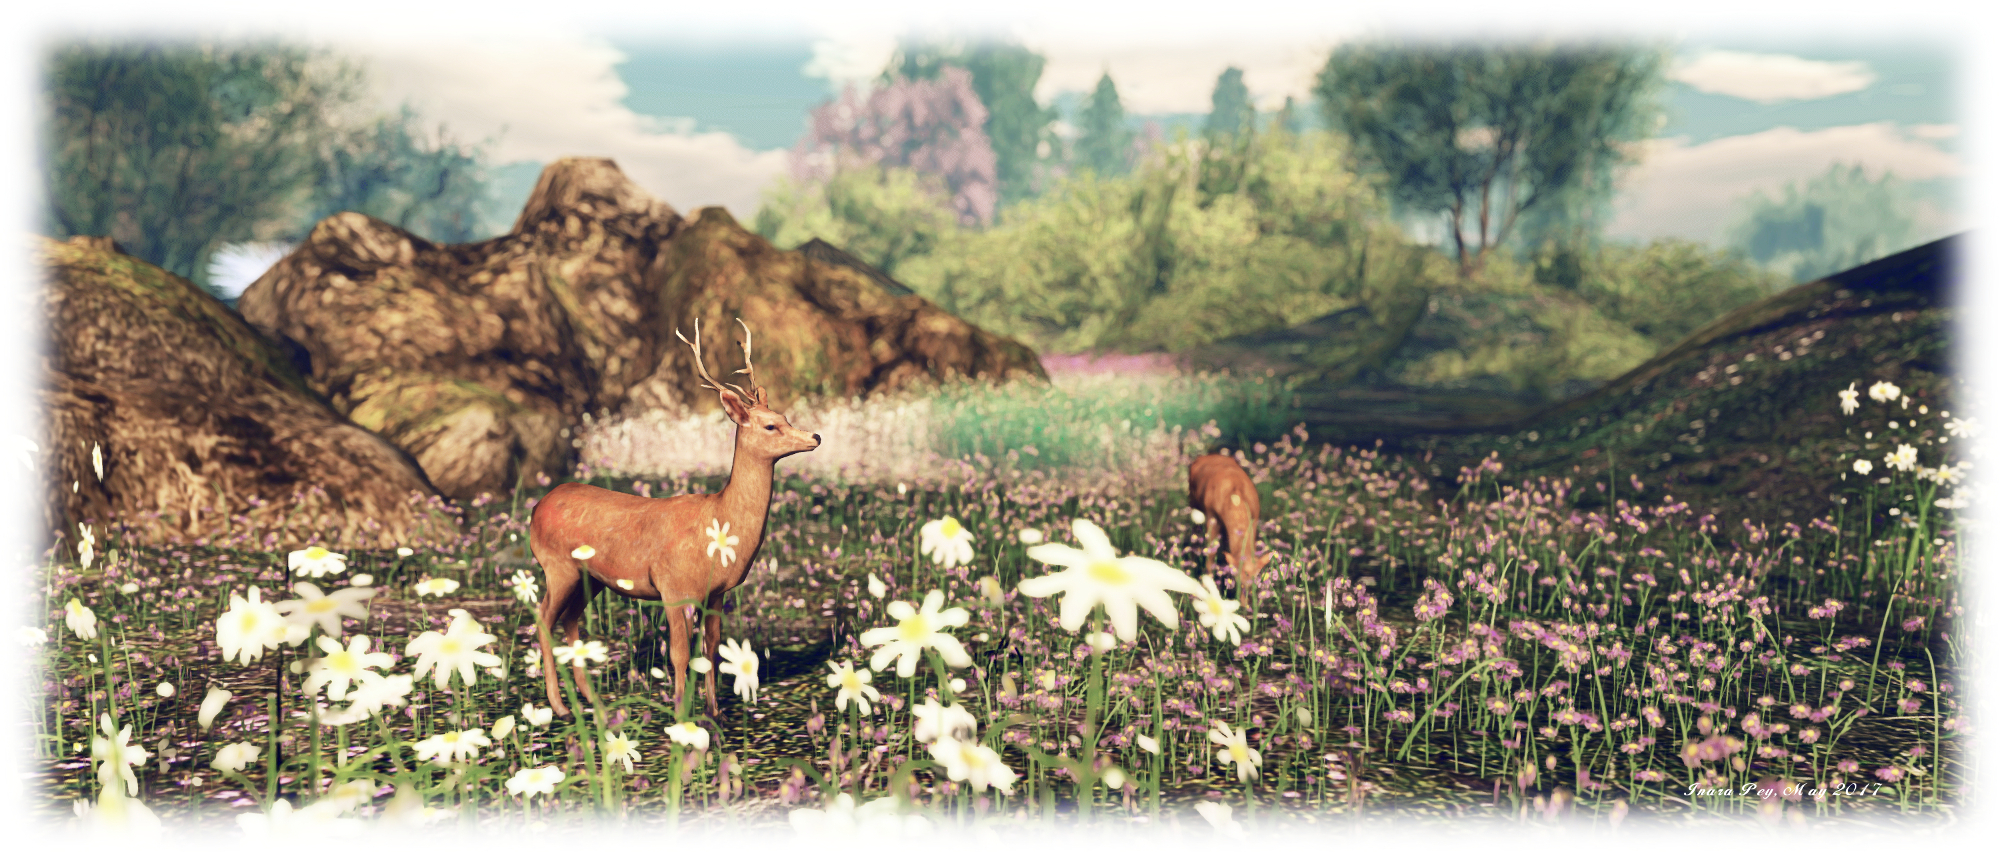 Meadow Rose III, Tyme; Inara Pey, May 2017, on Flickr